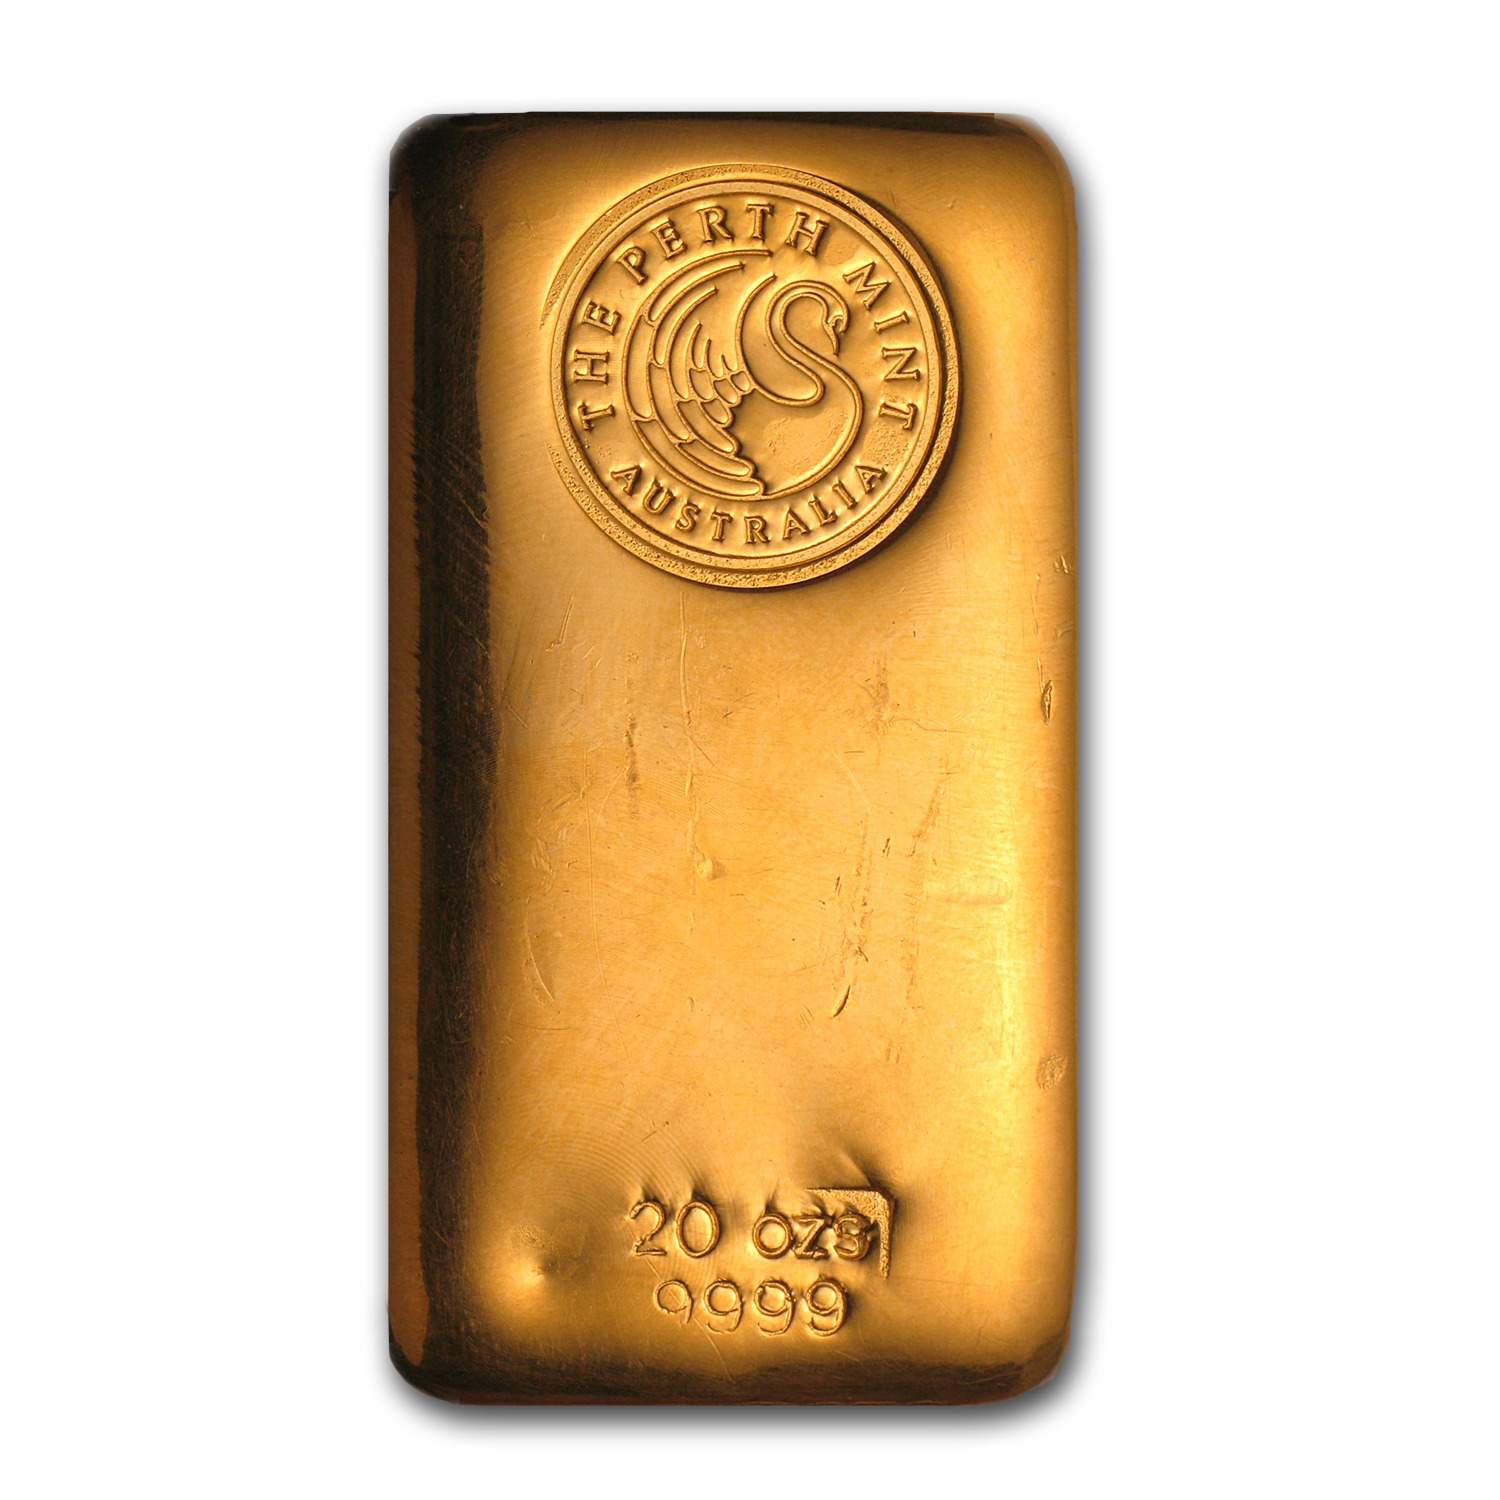 20 oz Gold Bar - Perth Mint (Poured, Loaf-Style)